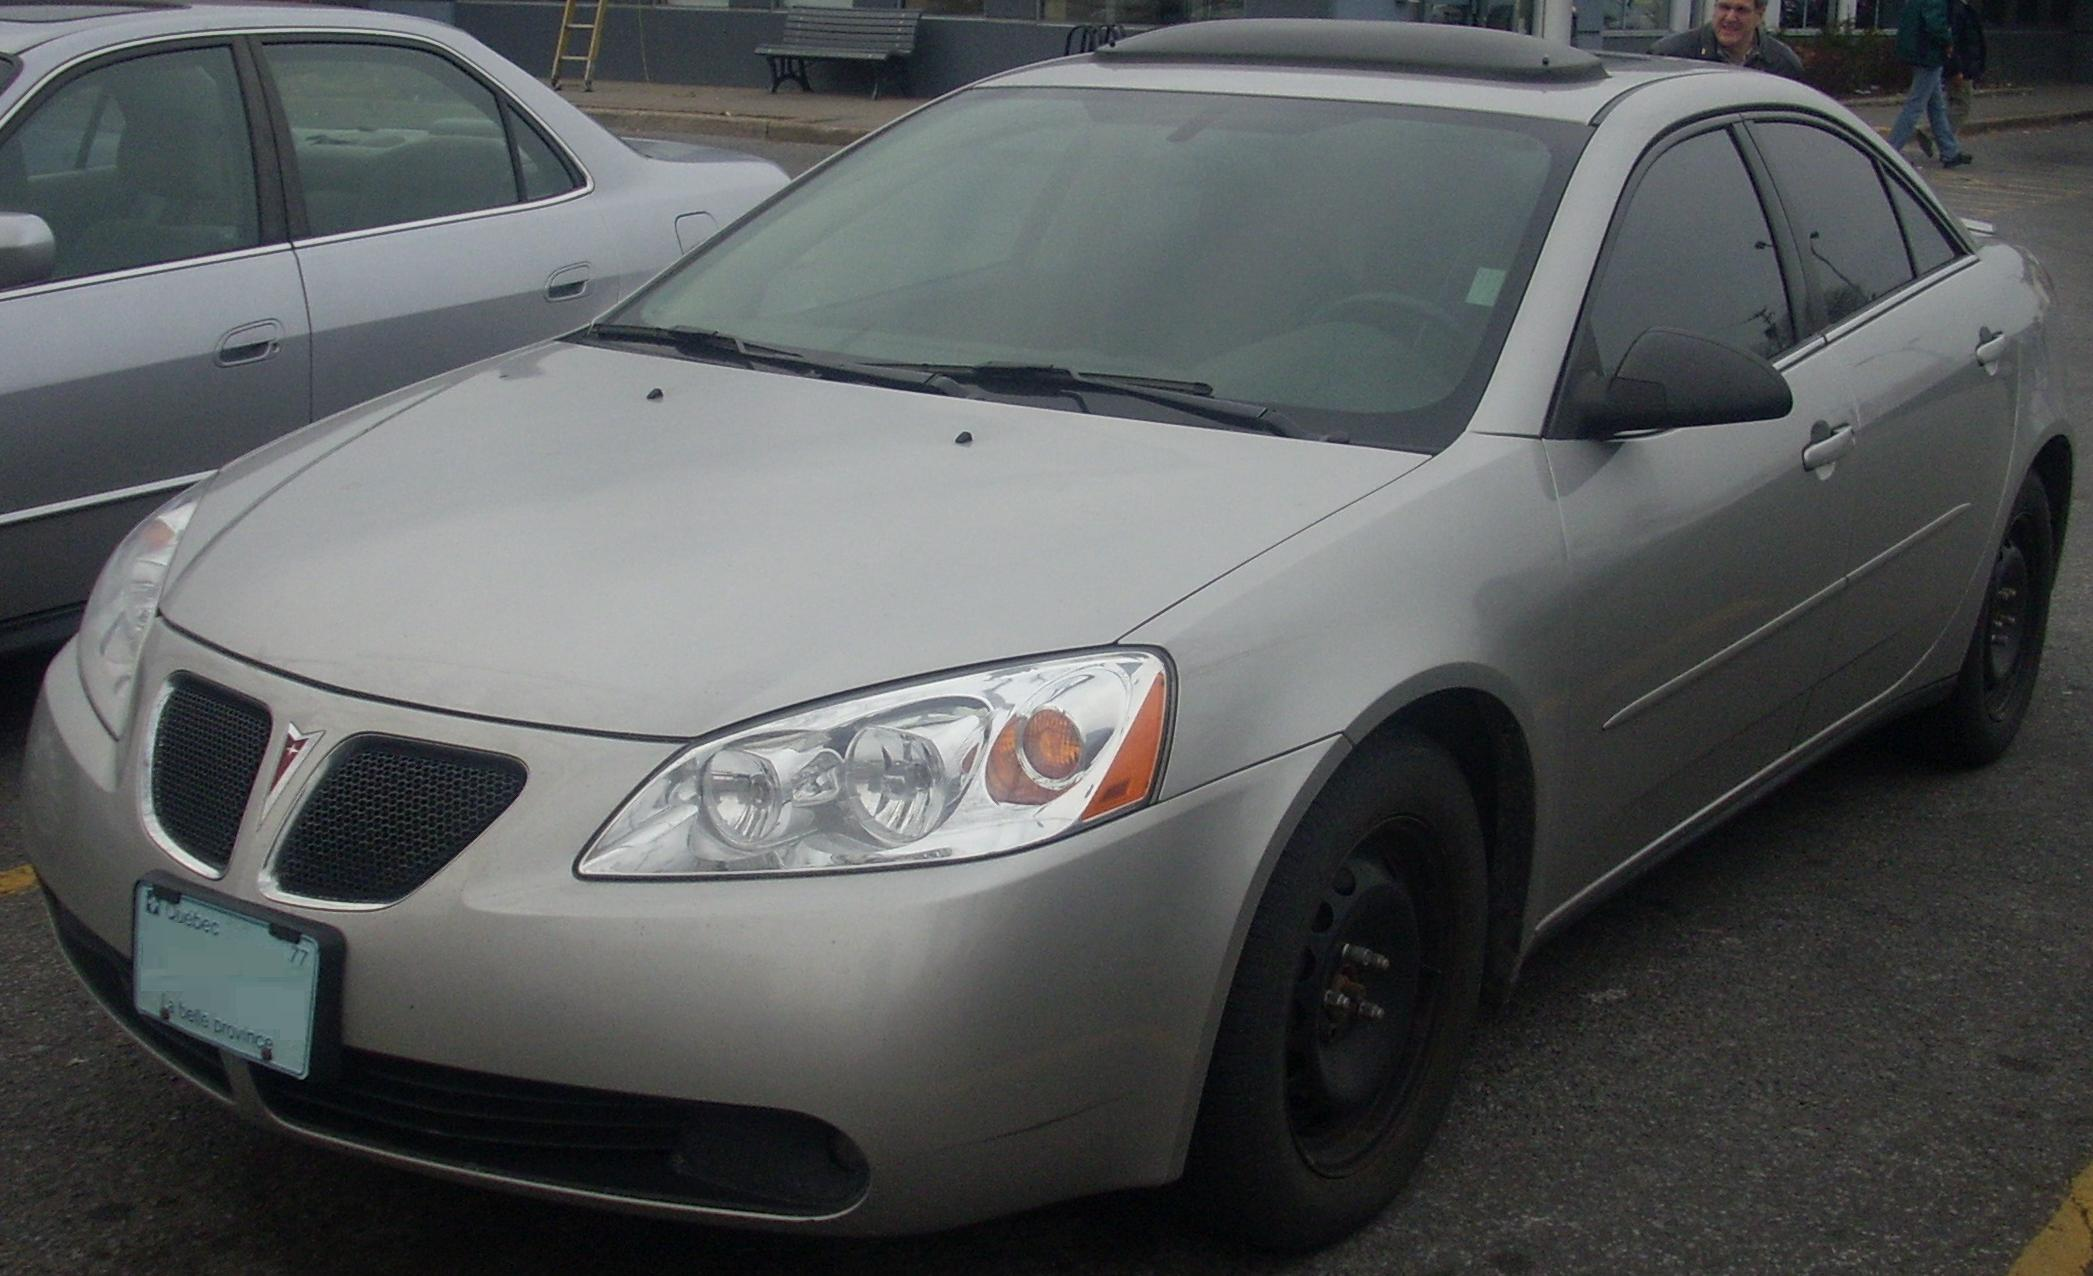 Pontiac G6 - The Crittenden Automotive Library